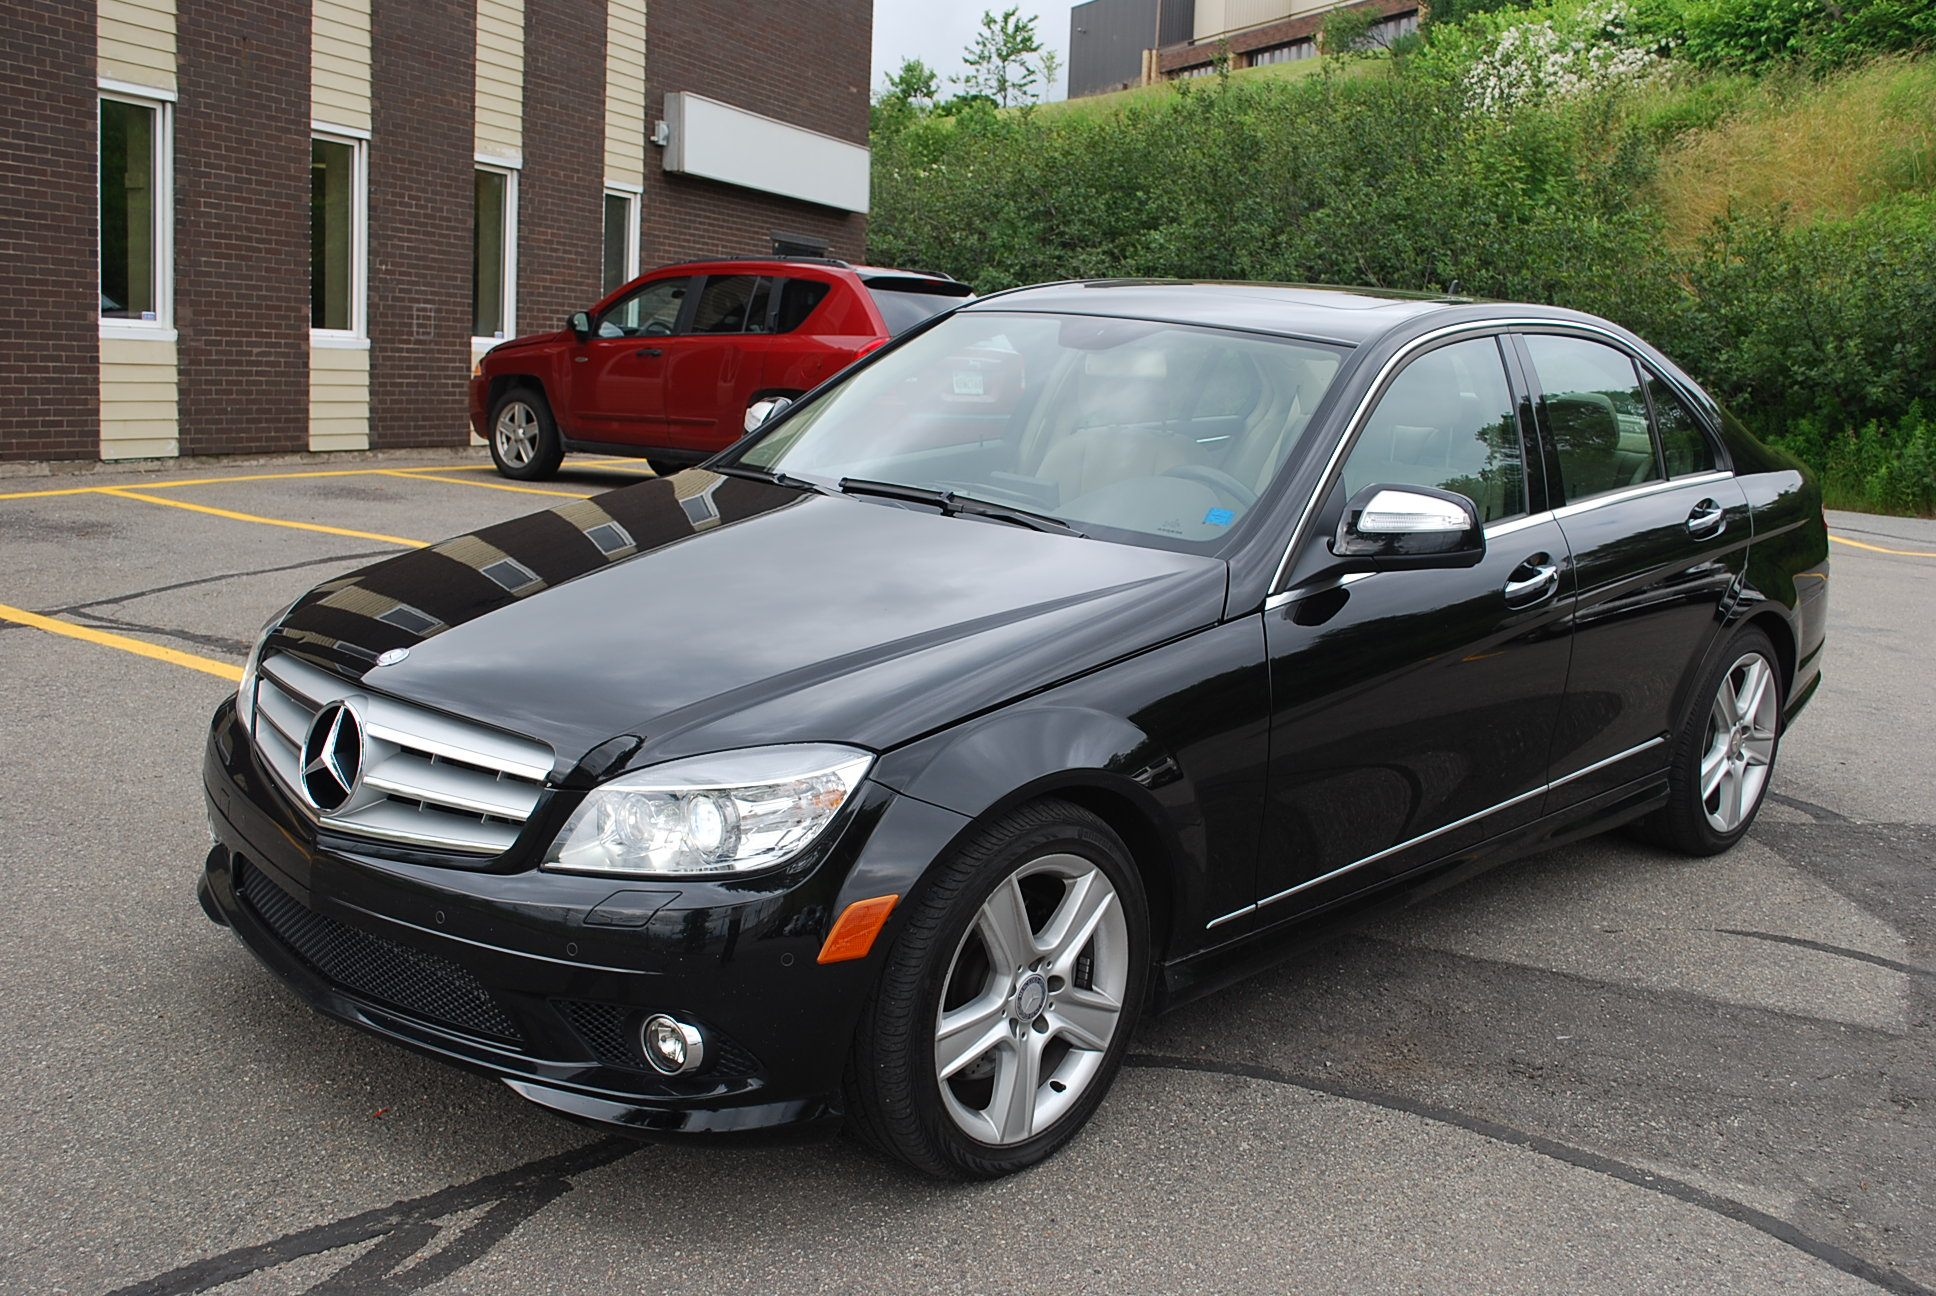 Used 2009 mercedes benz c300 4matic for sale in saint john nb for 2009 mercedes benz c 300